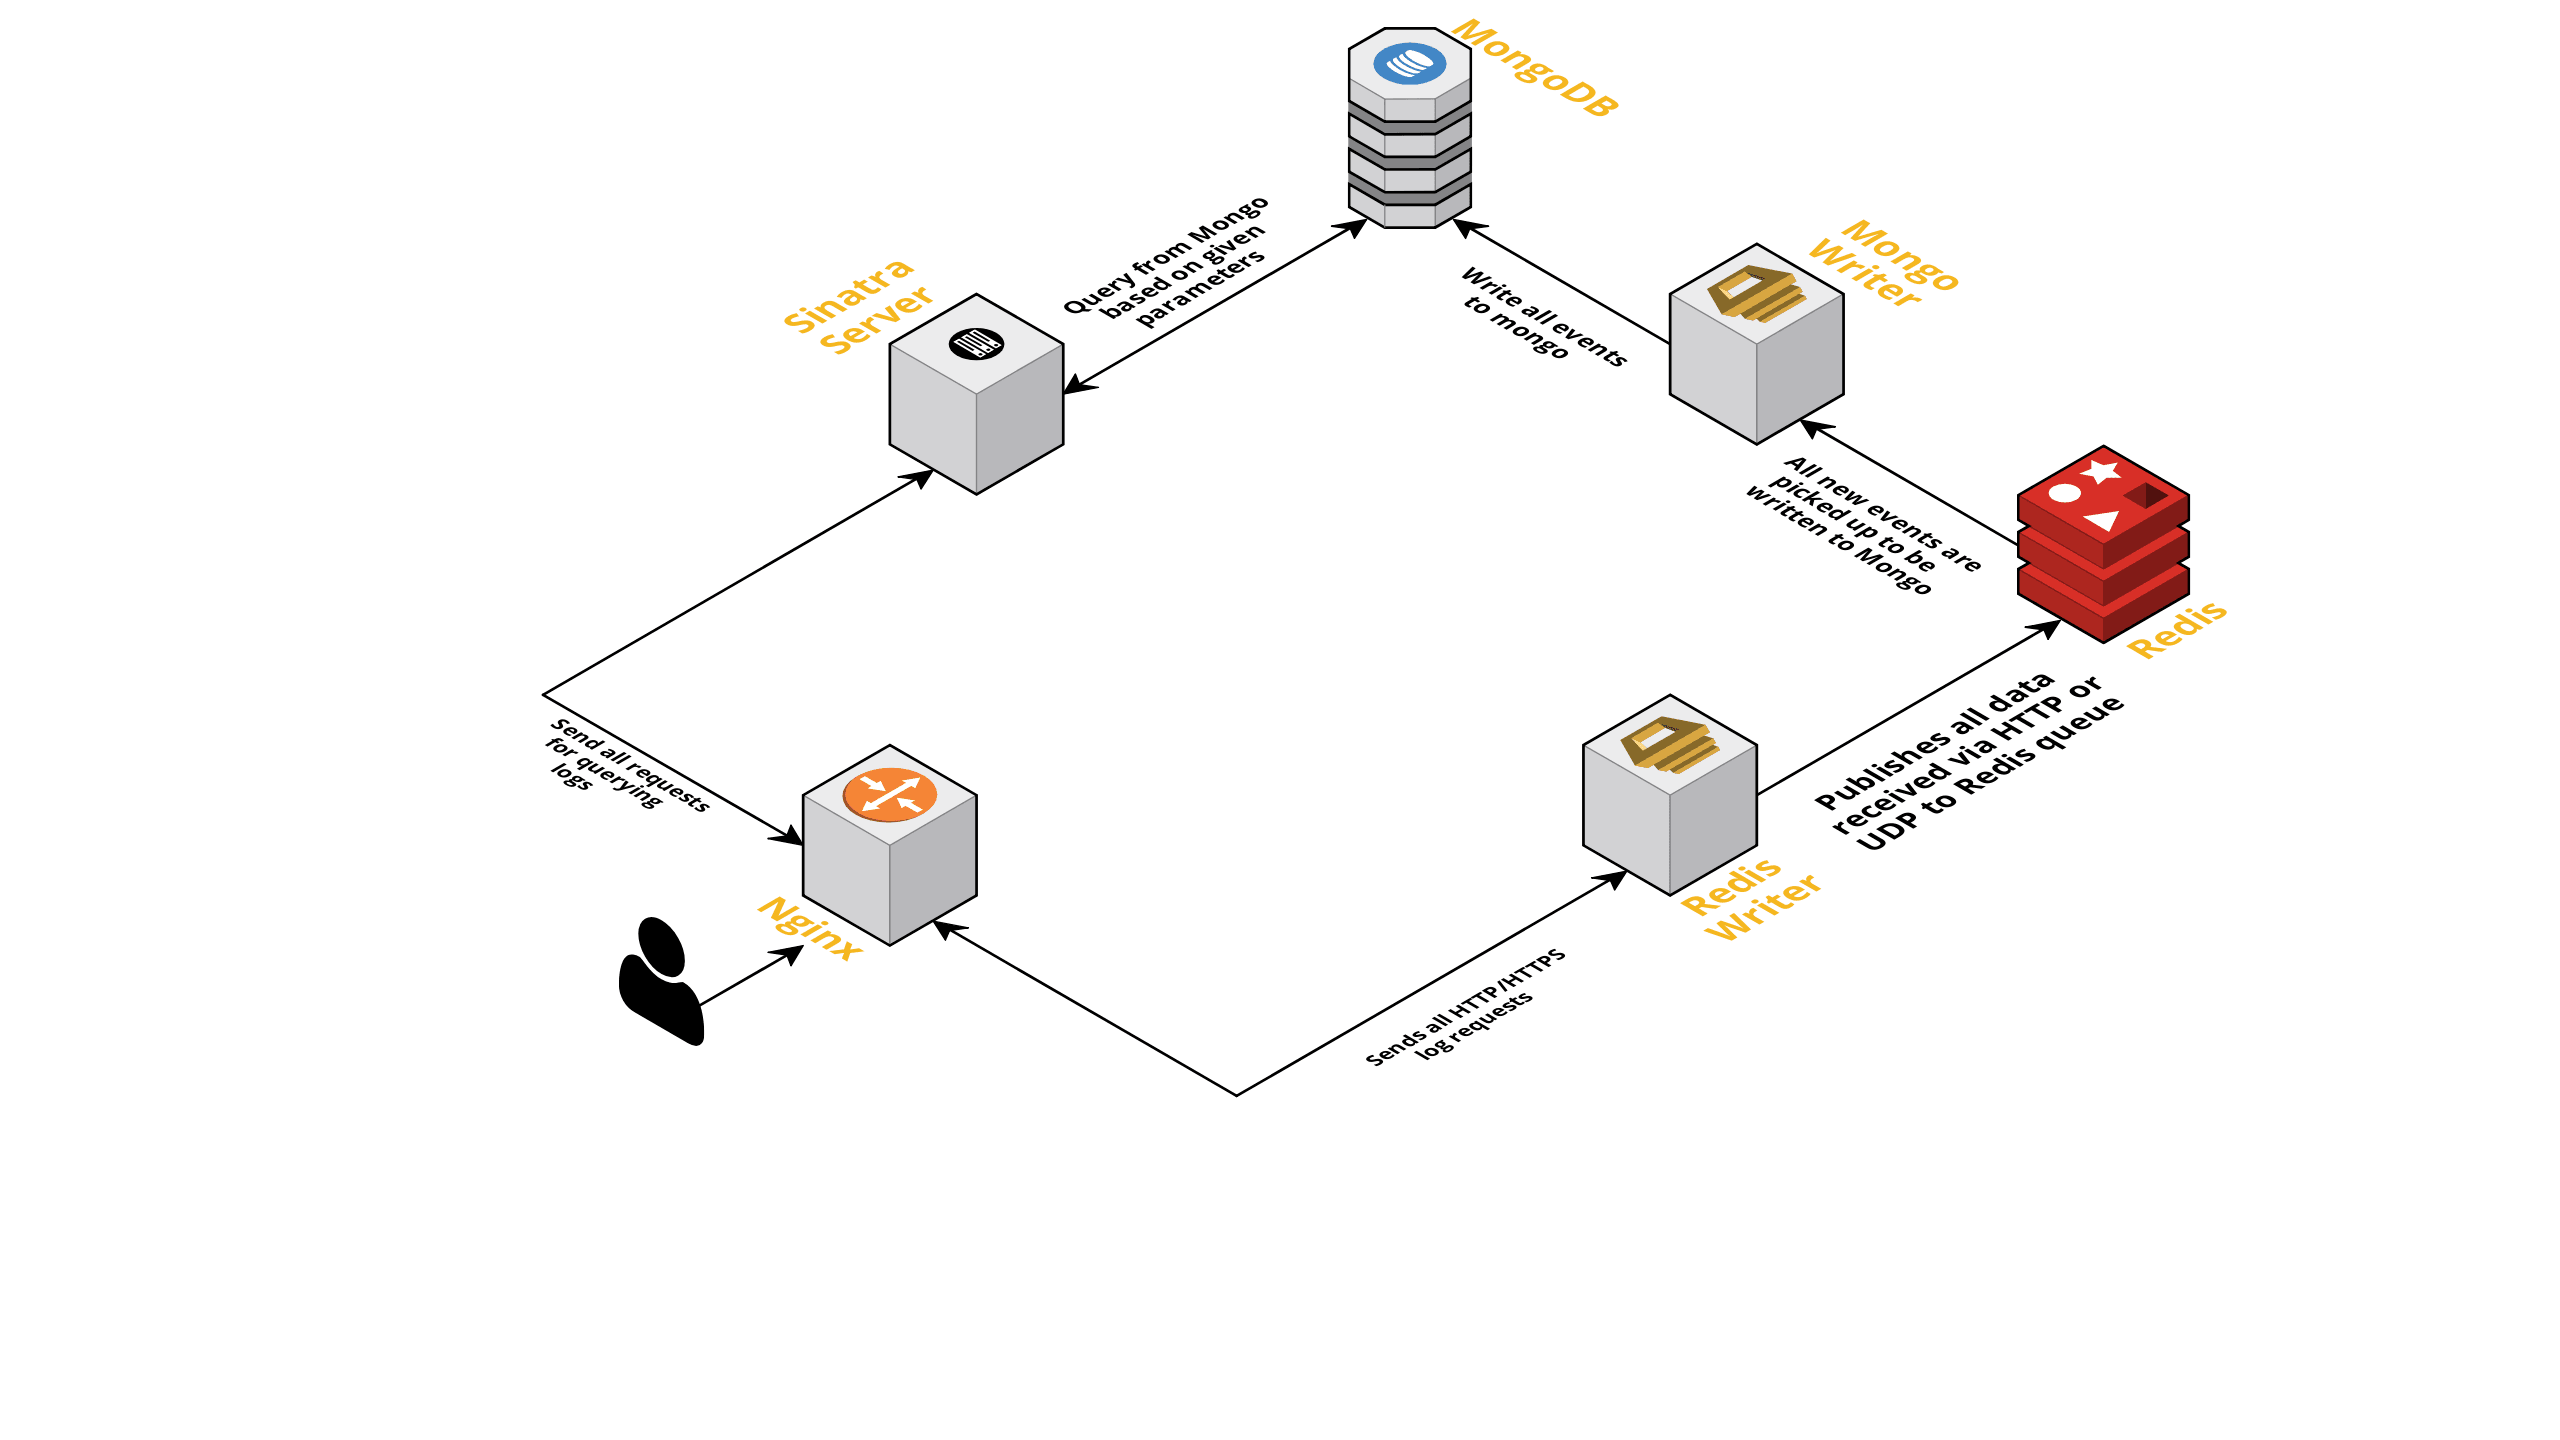 Building A Central Logging Service In-House — Smashing Magazine